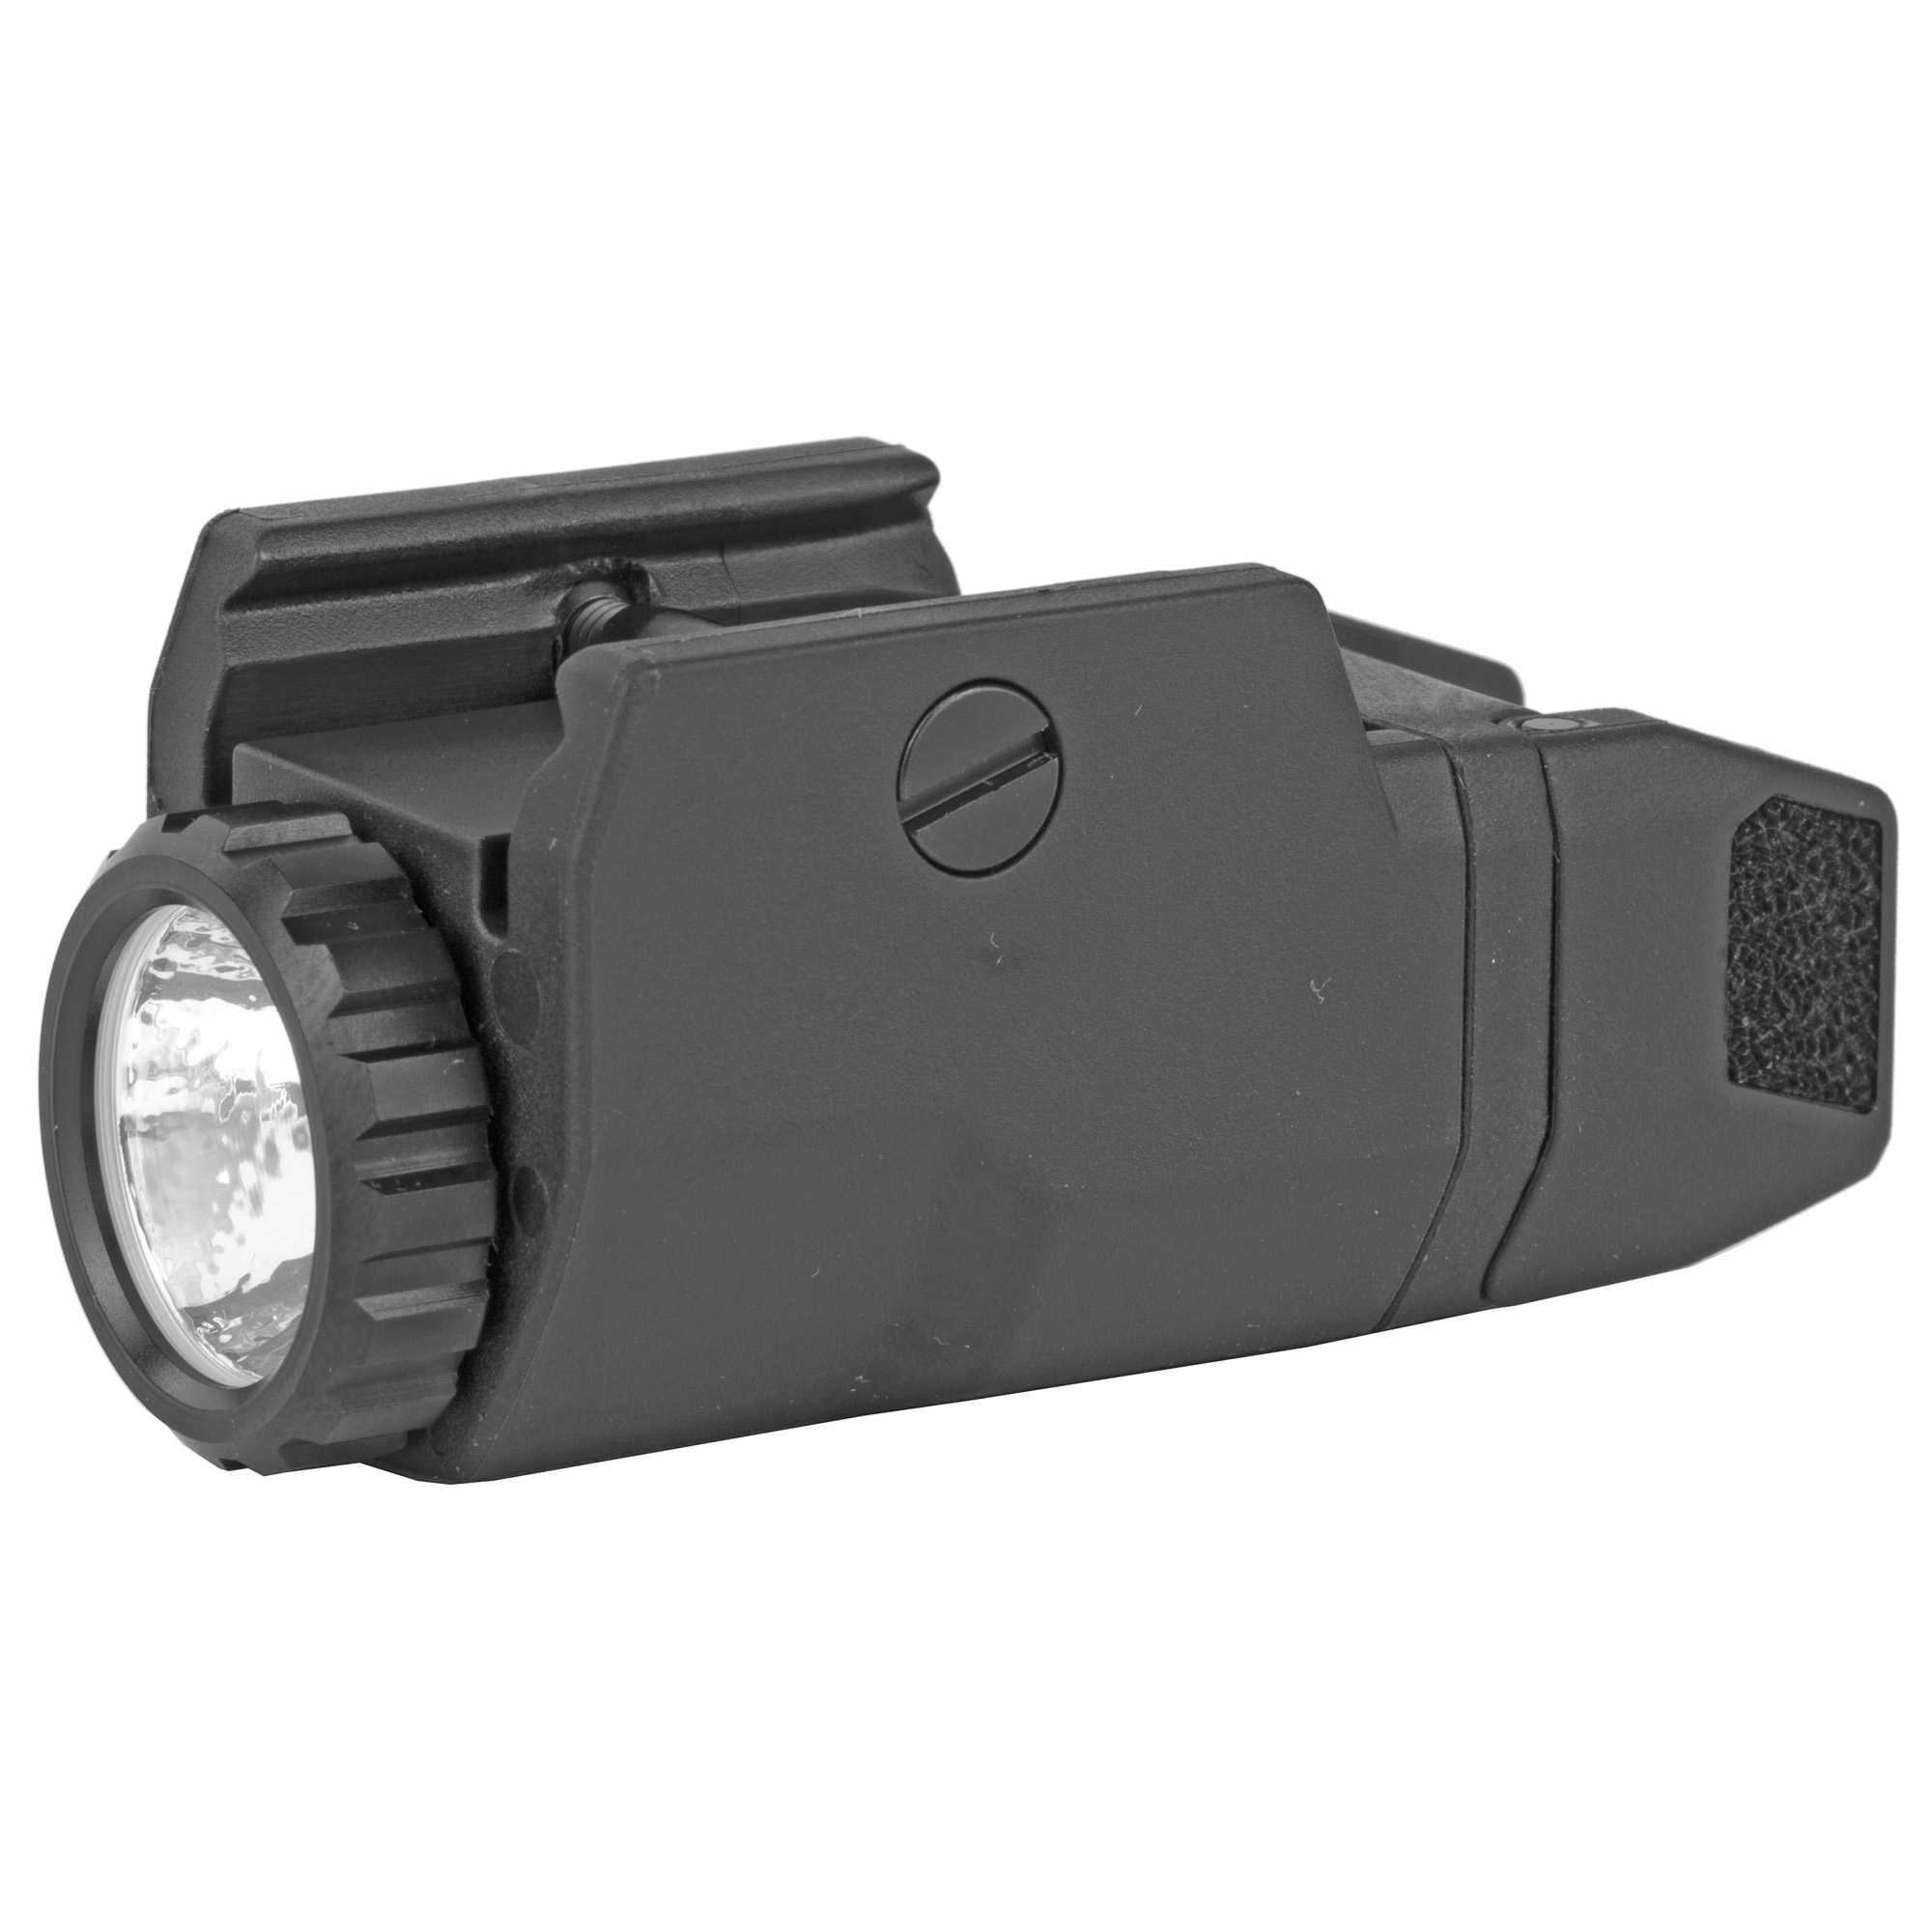 """The APL Compact provides 200 lumens of vibrant white light with up to 1.5 hours of runtime. Ultra-light and durable inside and out"""" weighing less than 2 ounces"""" it provides a high-intensity tight beam to fill your field of view for close to mid-range target identification. The water-resistant"""" glass reinforced polymer body is incredibly powerful and ultra-compact. Extensively tested"""" it integrates with MIL-STD-1913 rails and offers constant and momentary operating modes. Textured paddles for a non-slip grip and ambidextrous on/off switches enable left or right hand activation. In addition"""" the easy-to-operate lockout system ensures the light isn't activated until you're ready."""